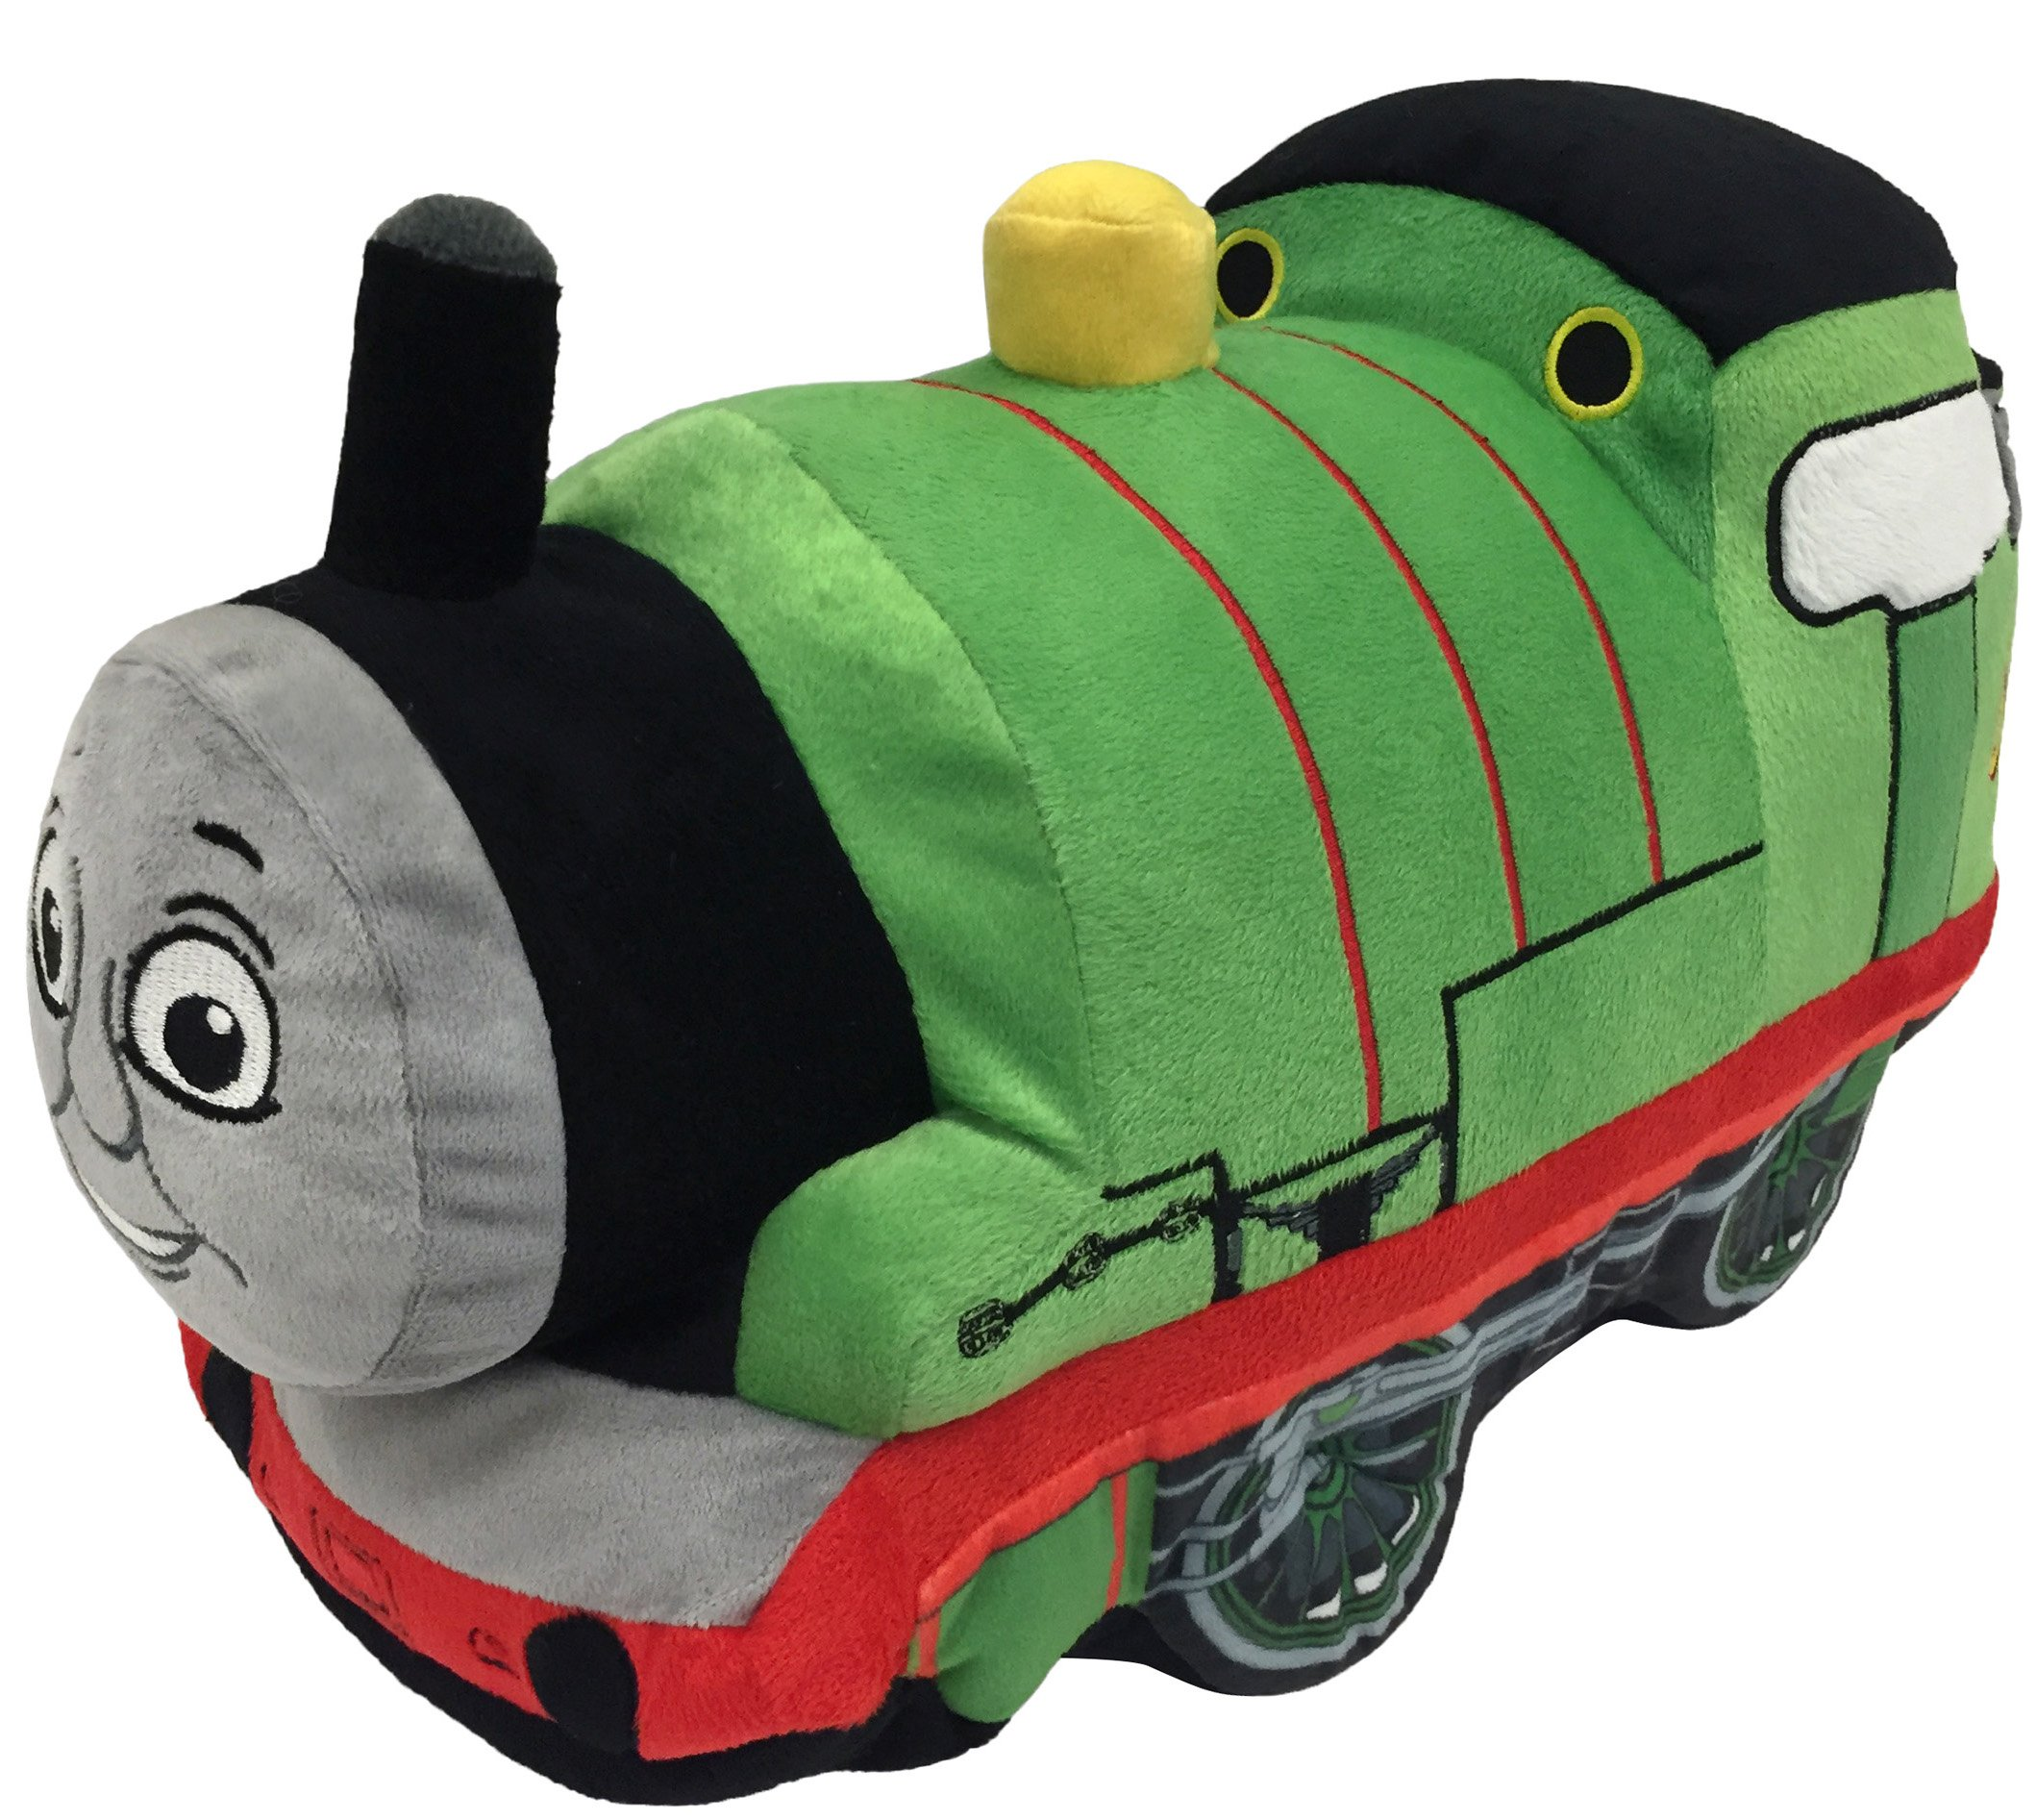 Mattel Thomas and Friends Plush Stuffed Percy Pillow Buddy - Kids Super Soft Polyester Microfiber, 15 inch (Official Mattel Product) by Thomas & Friends